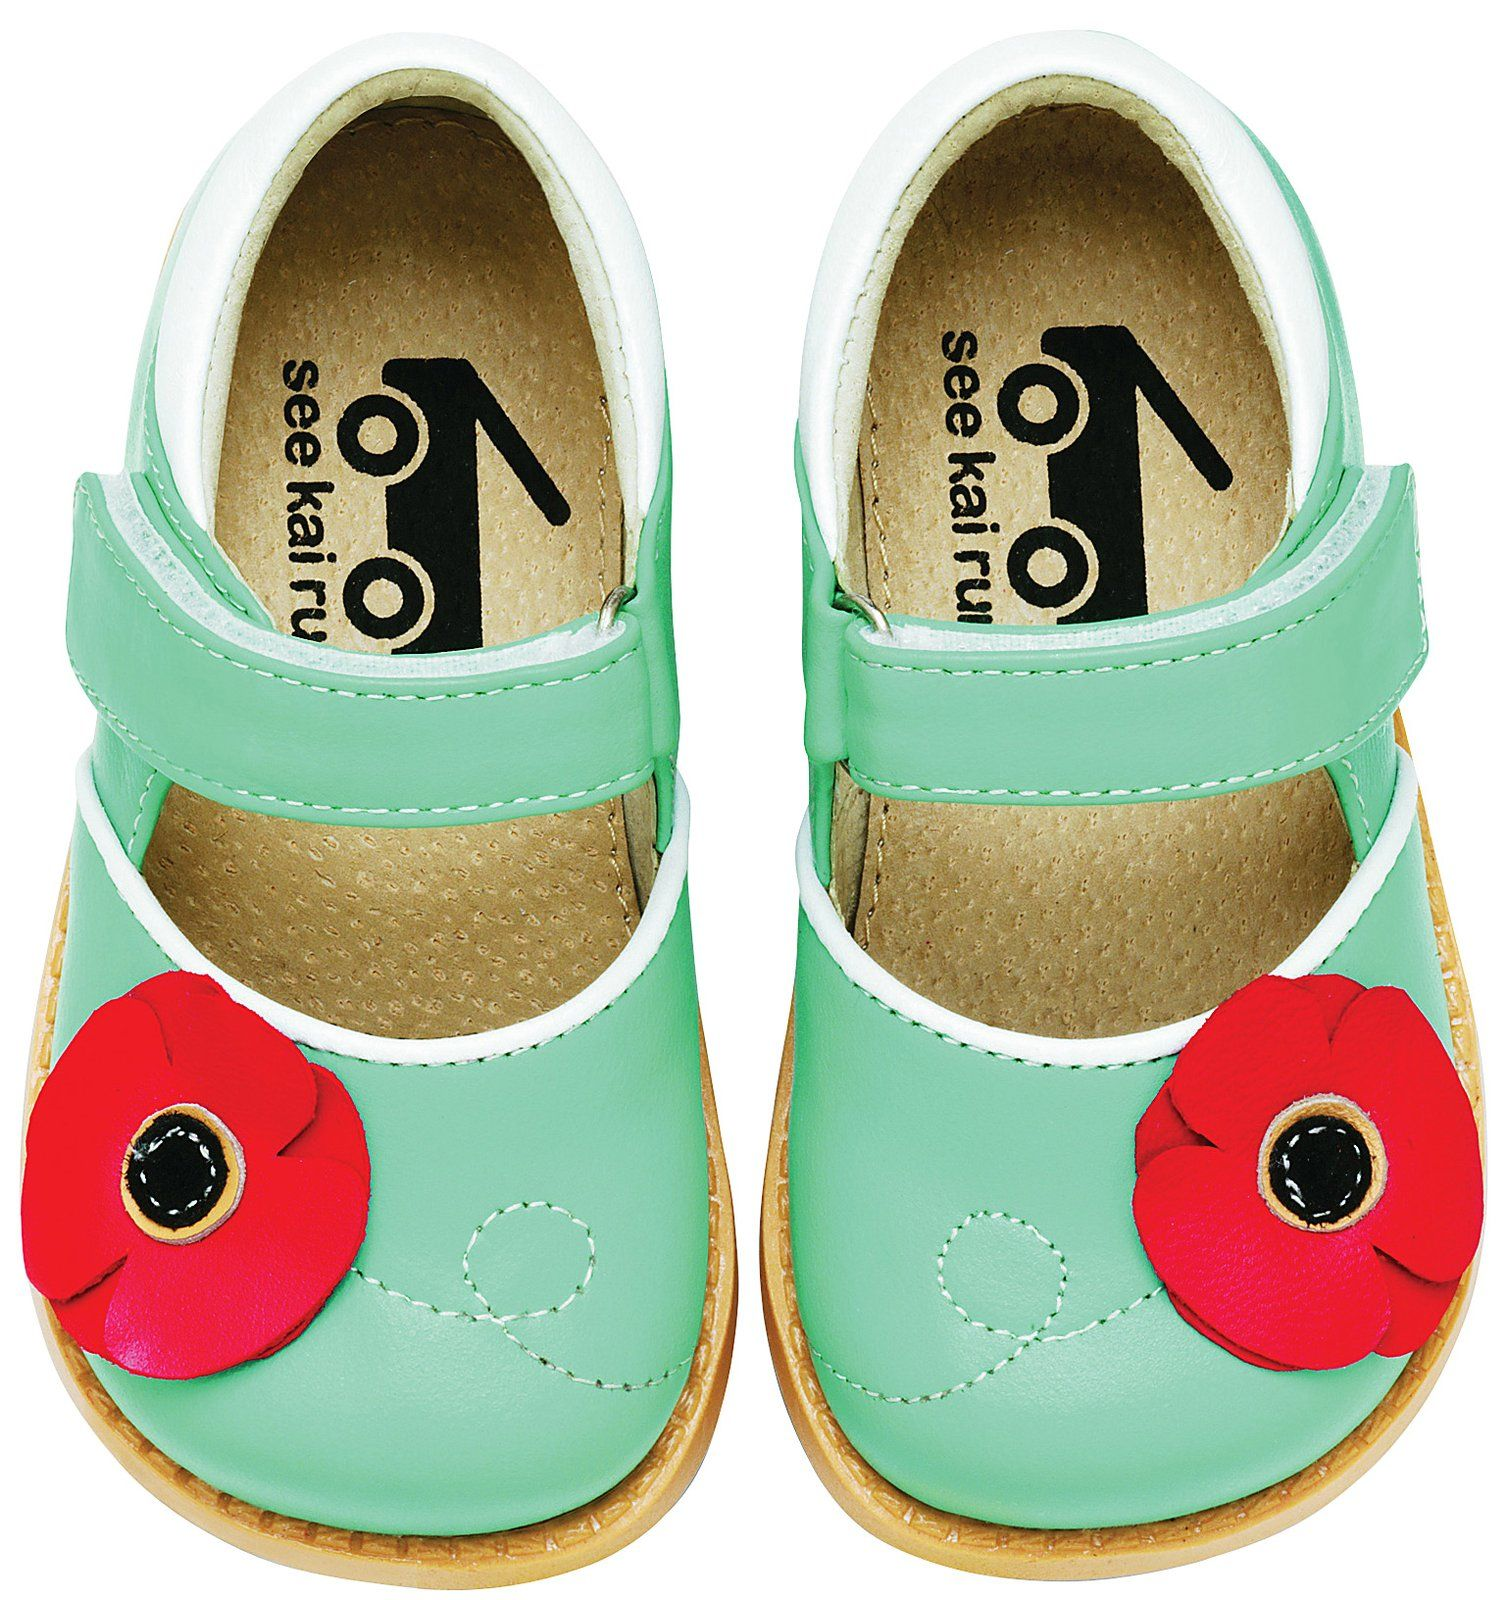 See Kai Run shoes from Diapers.com. Oh my cute shoes for both girls and  boys! c5ea3f583